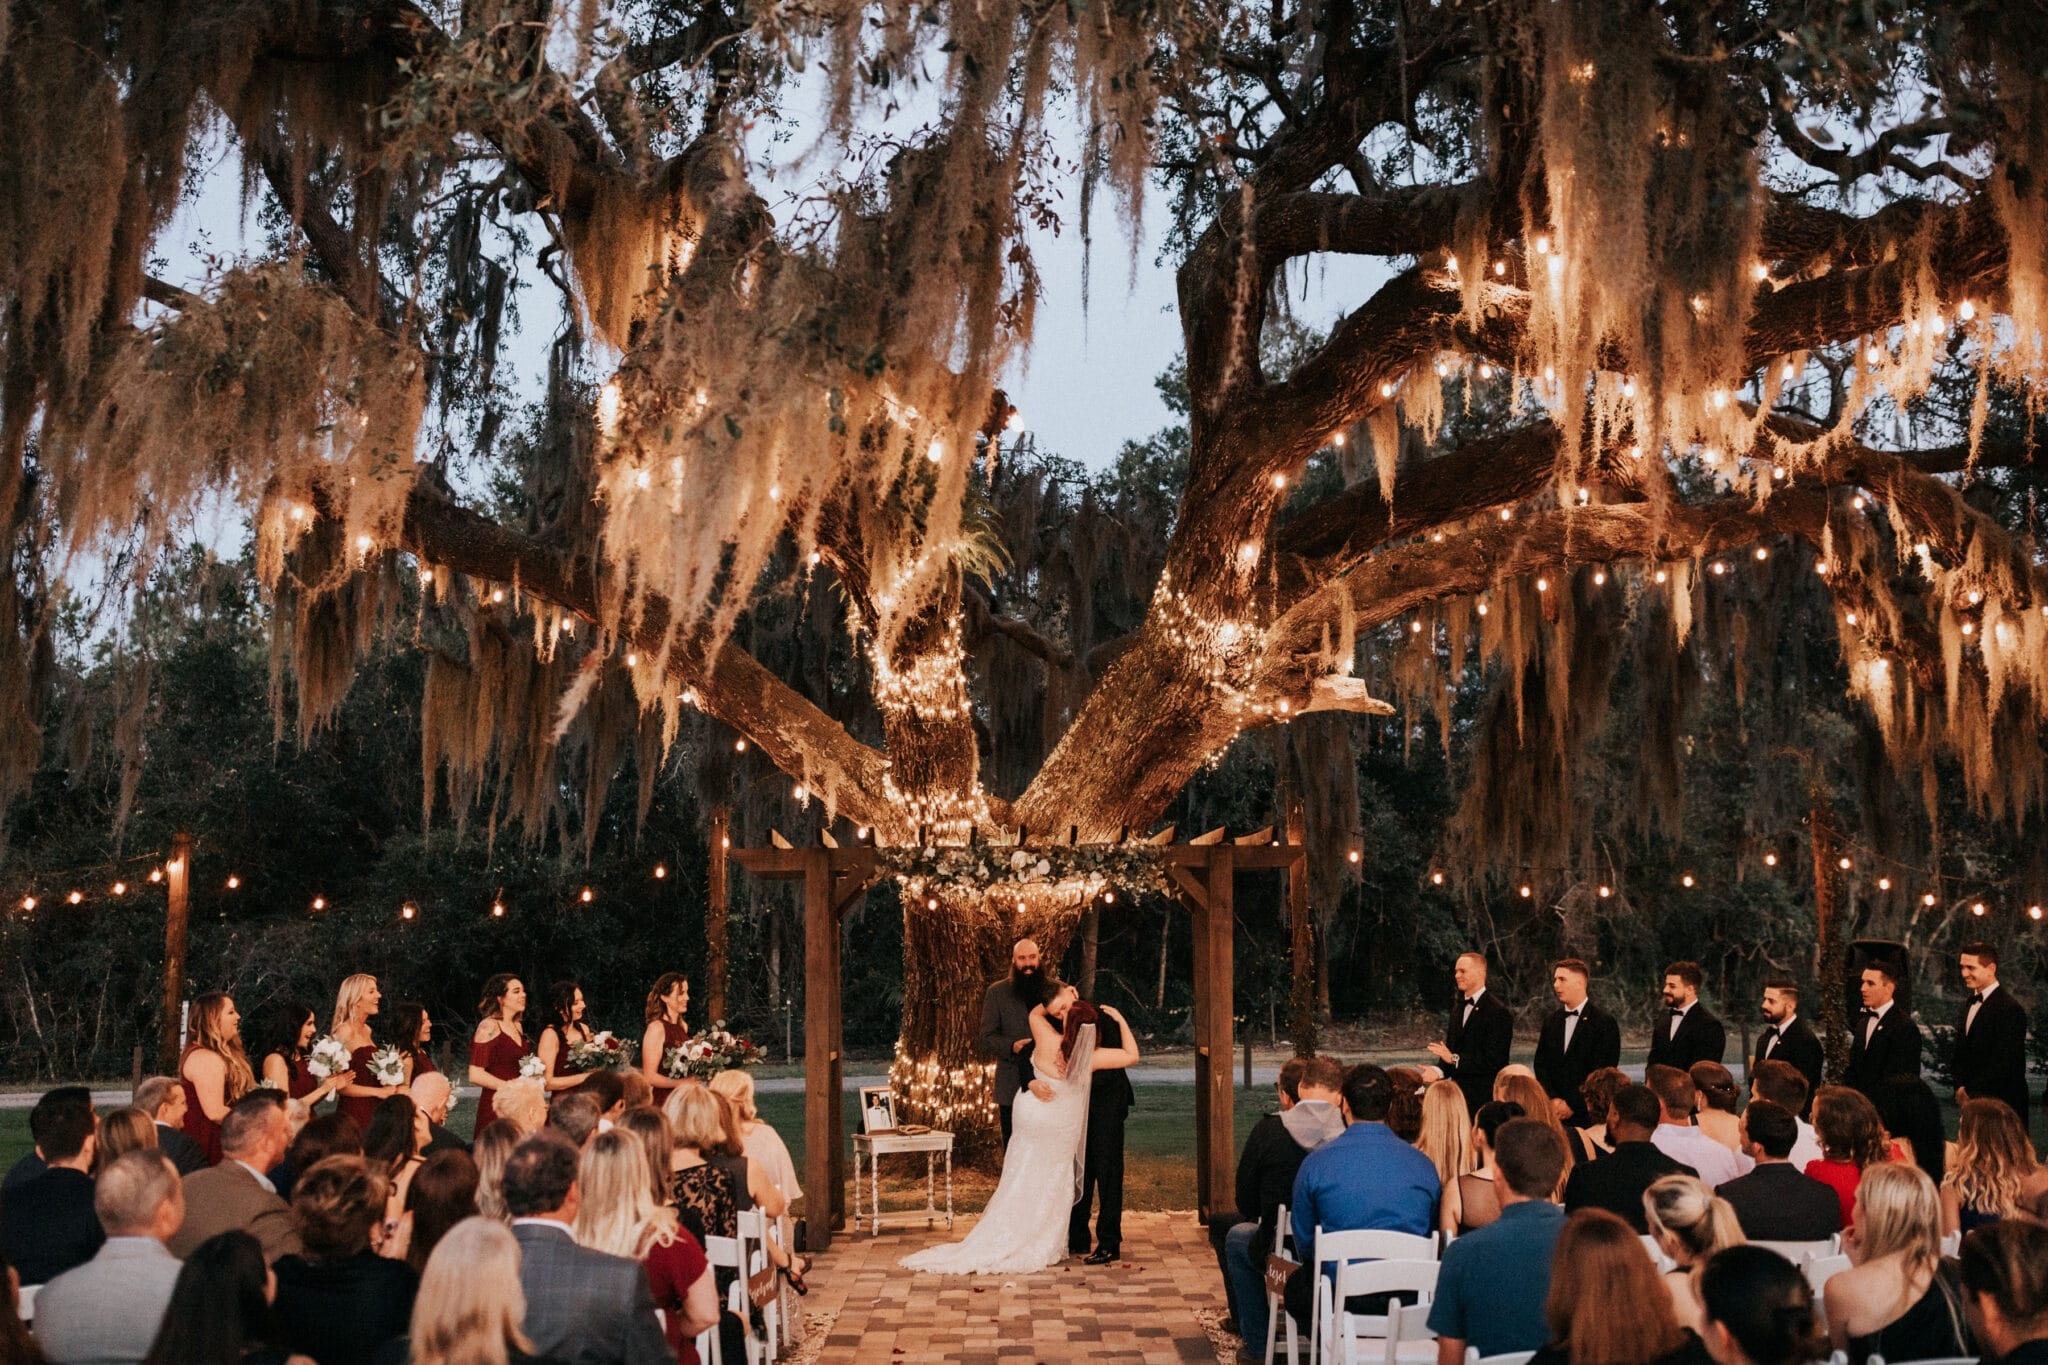 ceremony under trees with lights